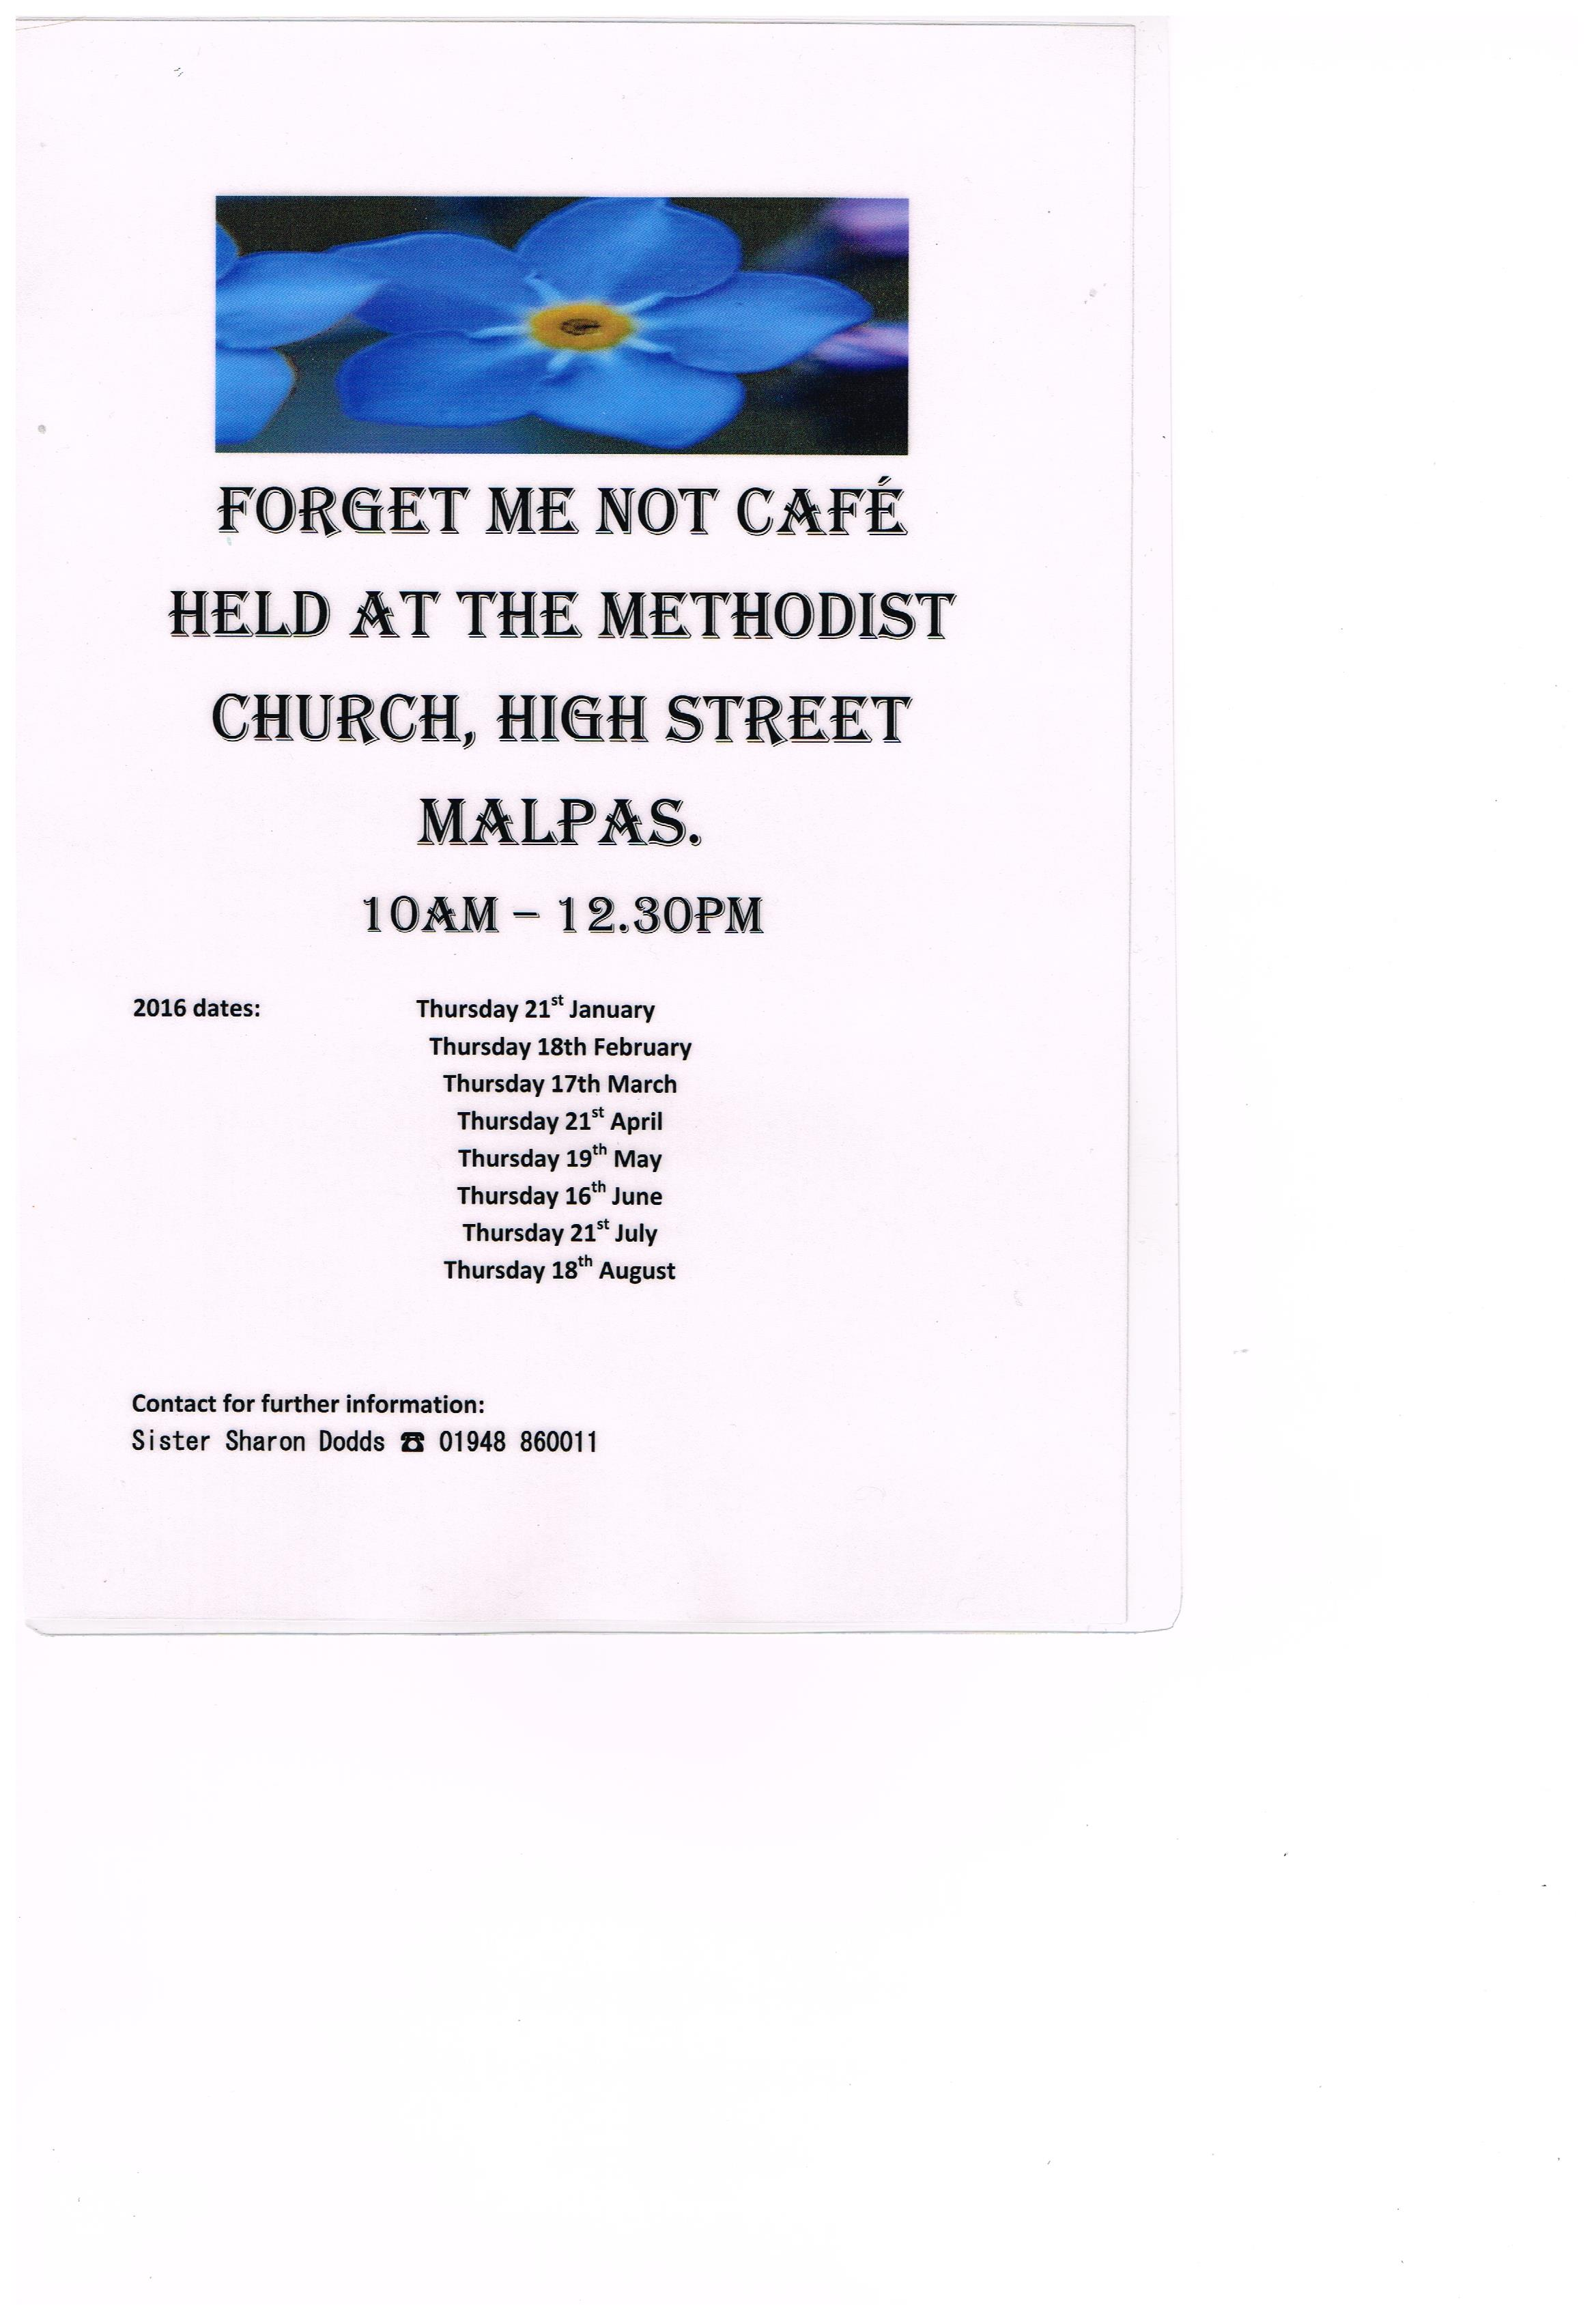 FORGET ME NOT CAFE 2016 DATES